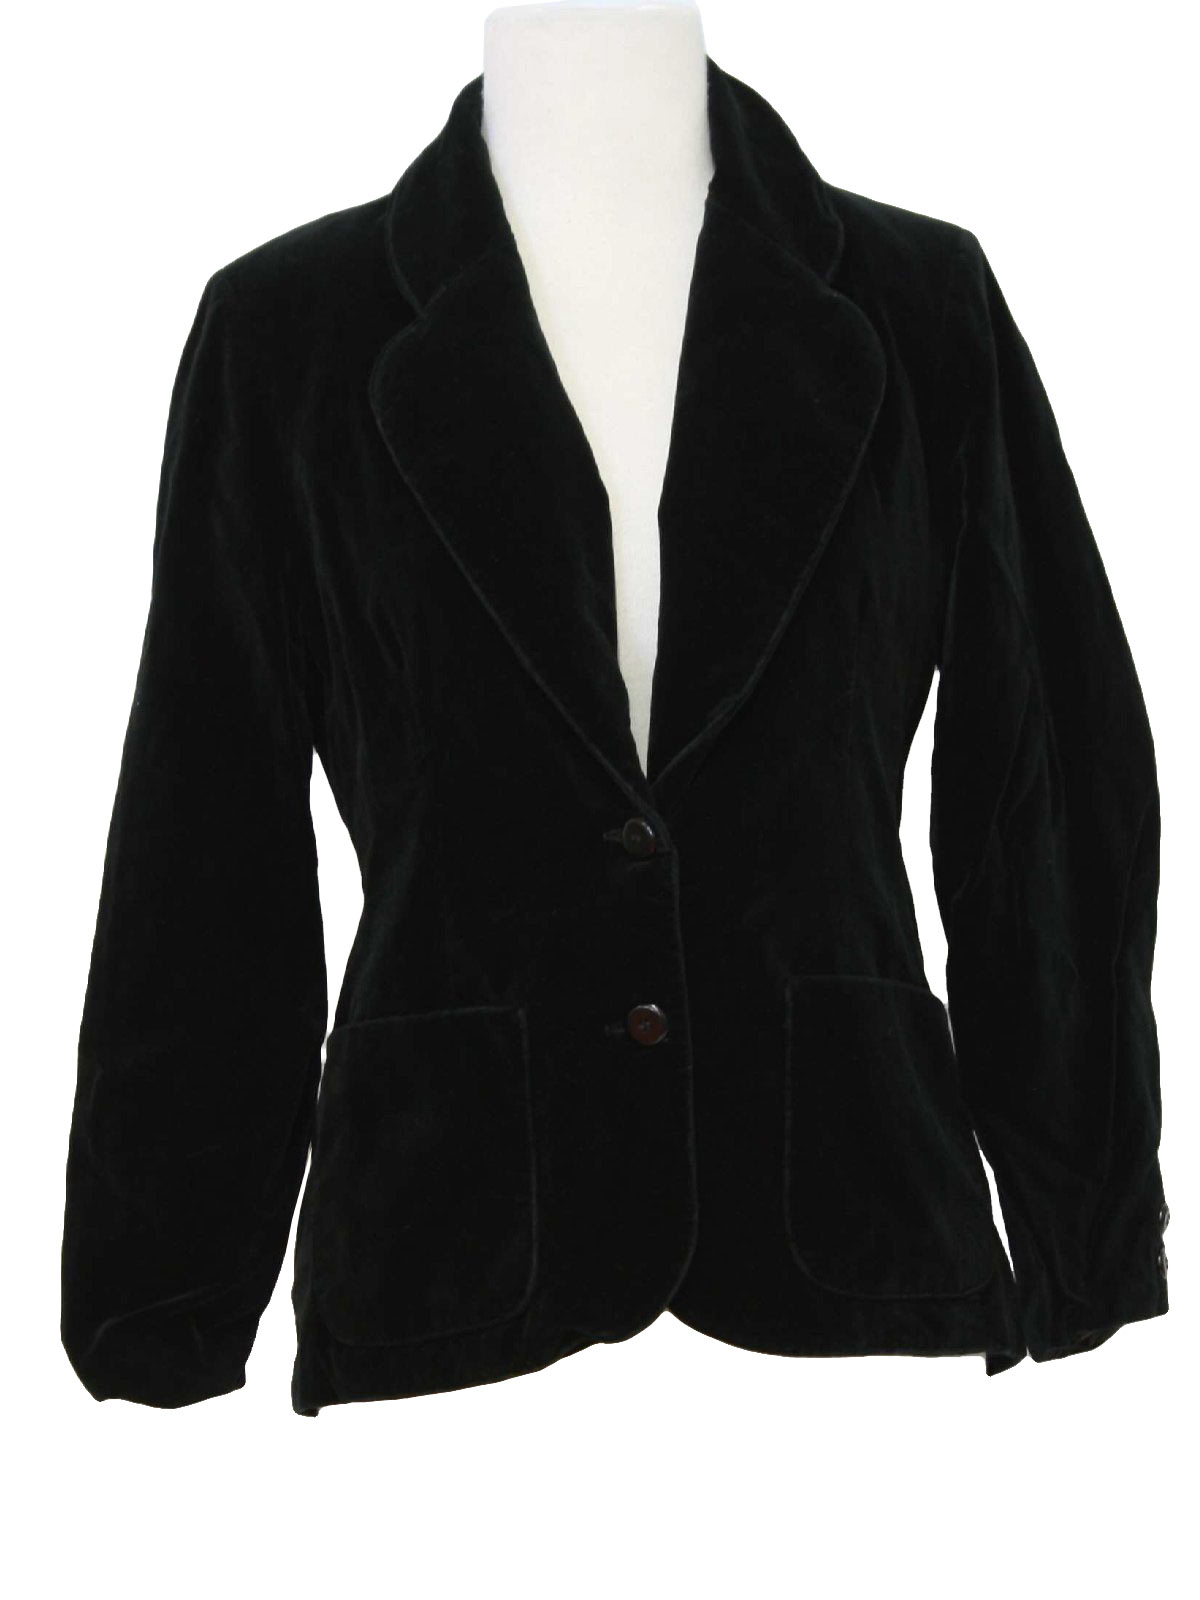 Collection Womens Black Blazer Jacket Pictures - Reikian